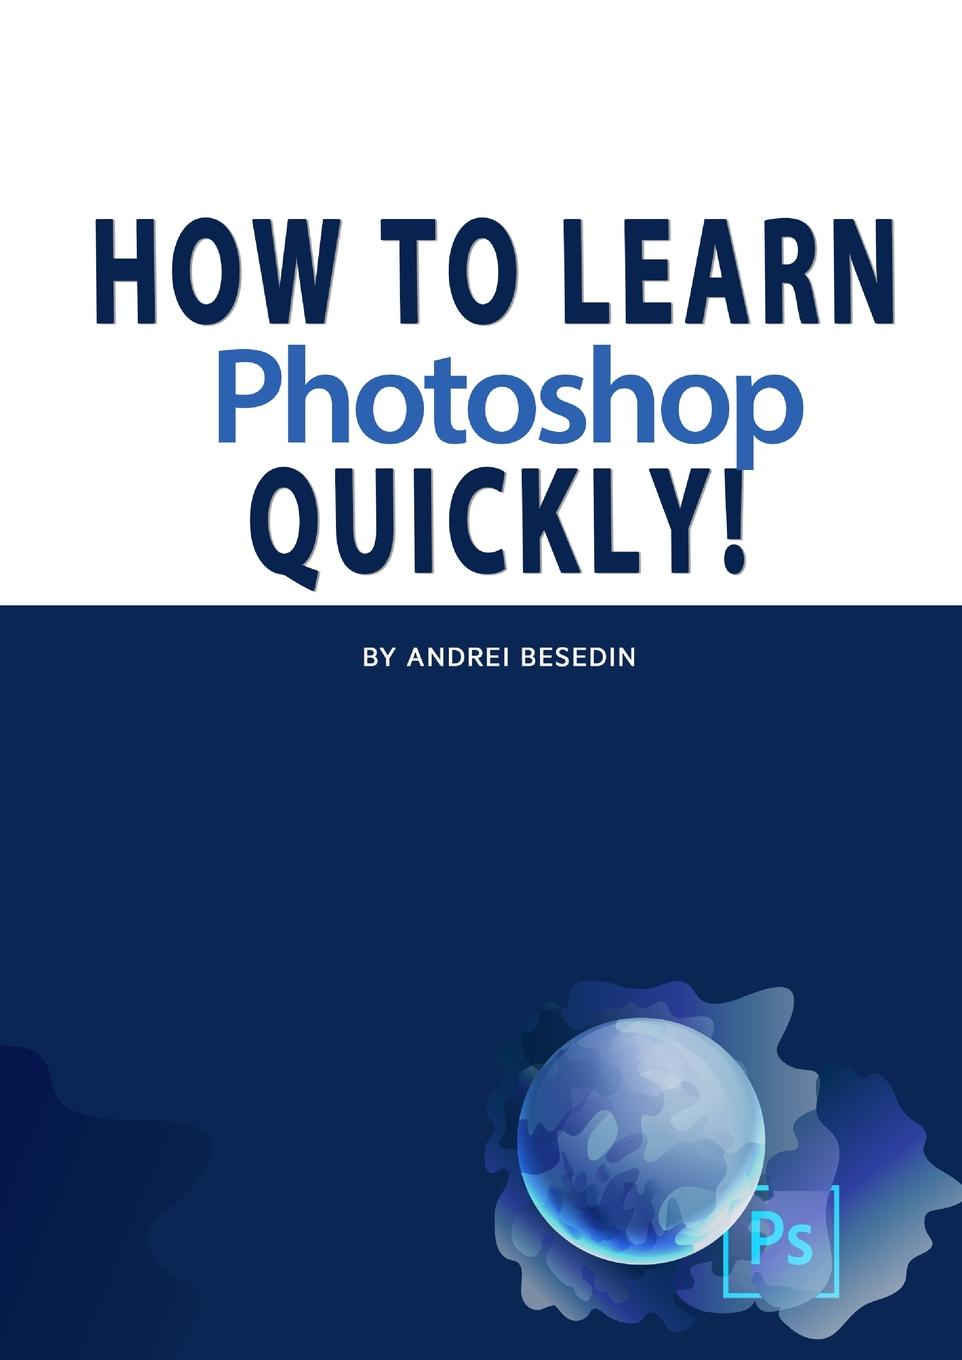 Andrei Besedin. How To Learn Photoshop Quickly.